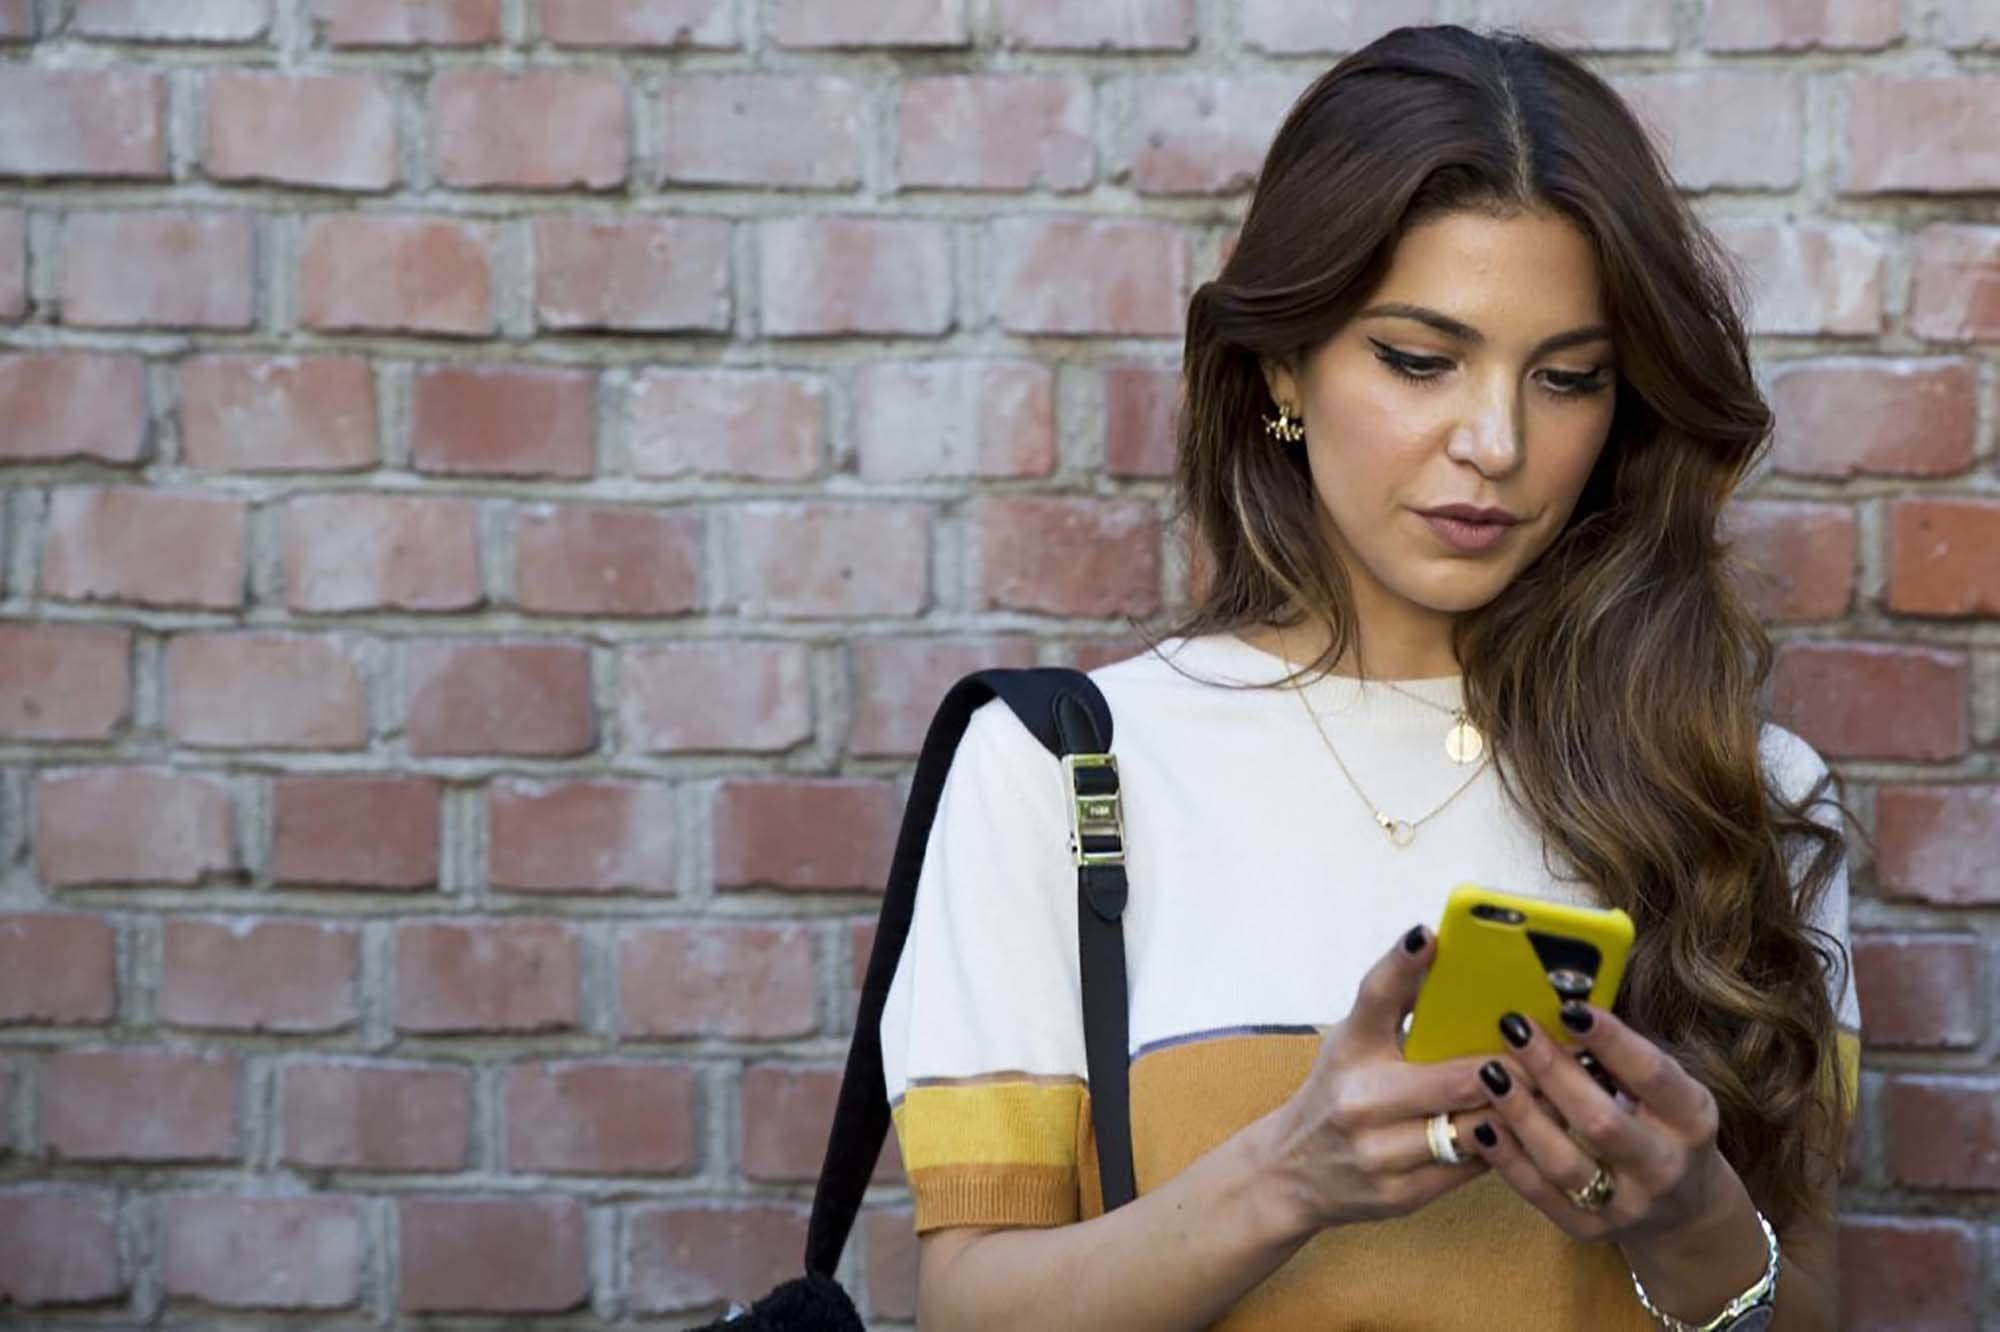 natural wavy hair: close up shot of woman with side swept dark brown waves, wearing white and gold top, posing against a brick wall and holding a phone